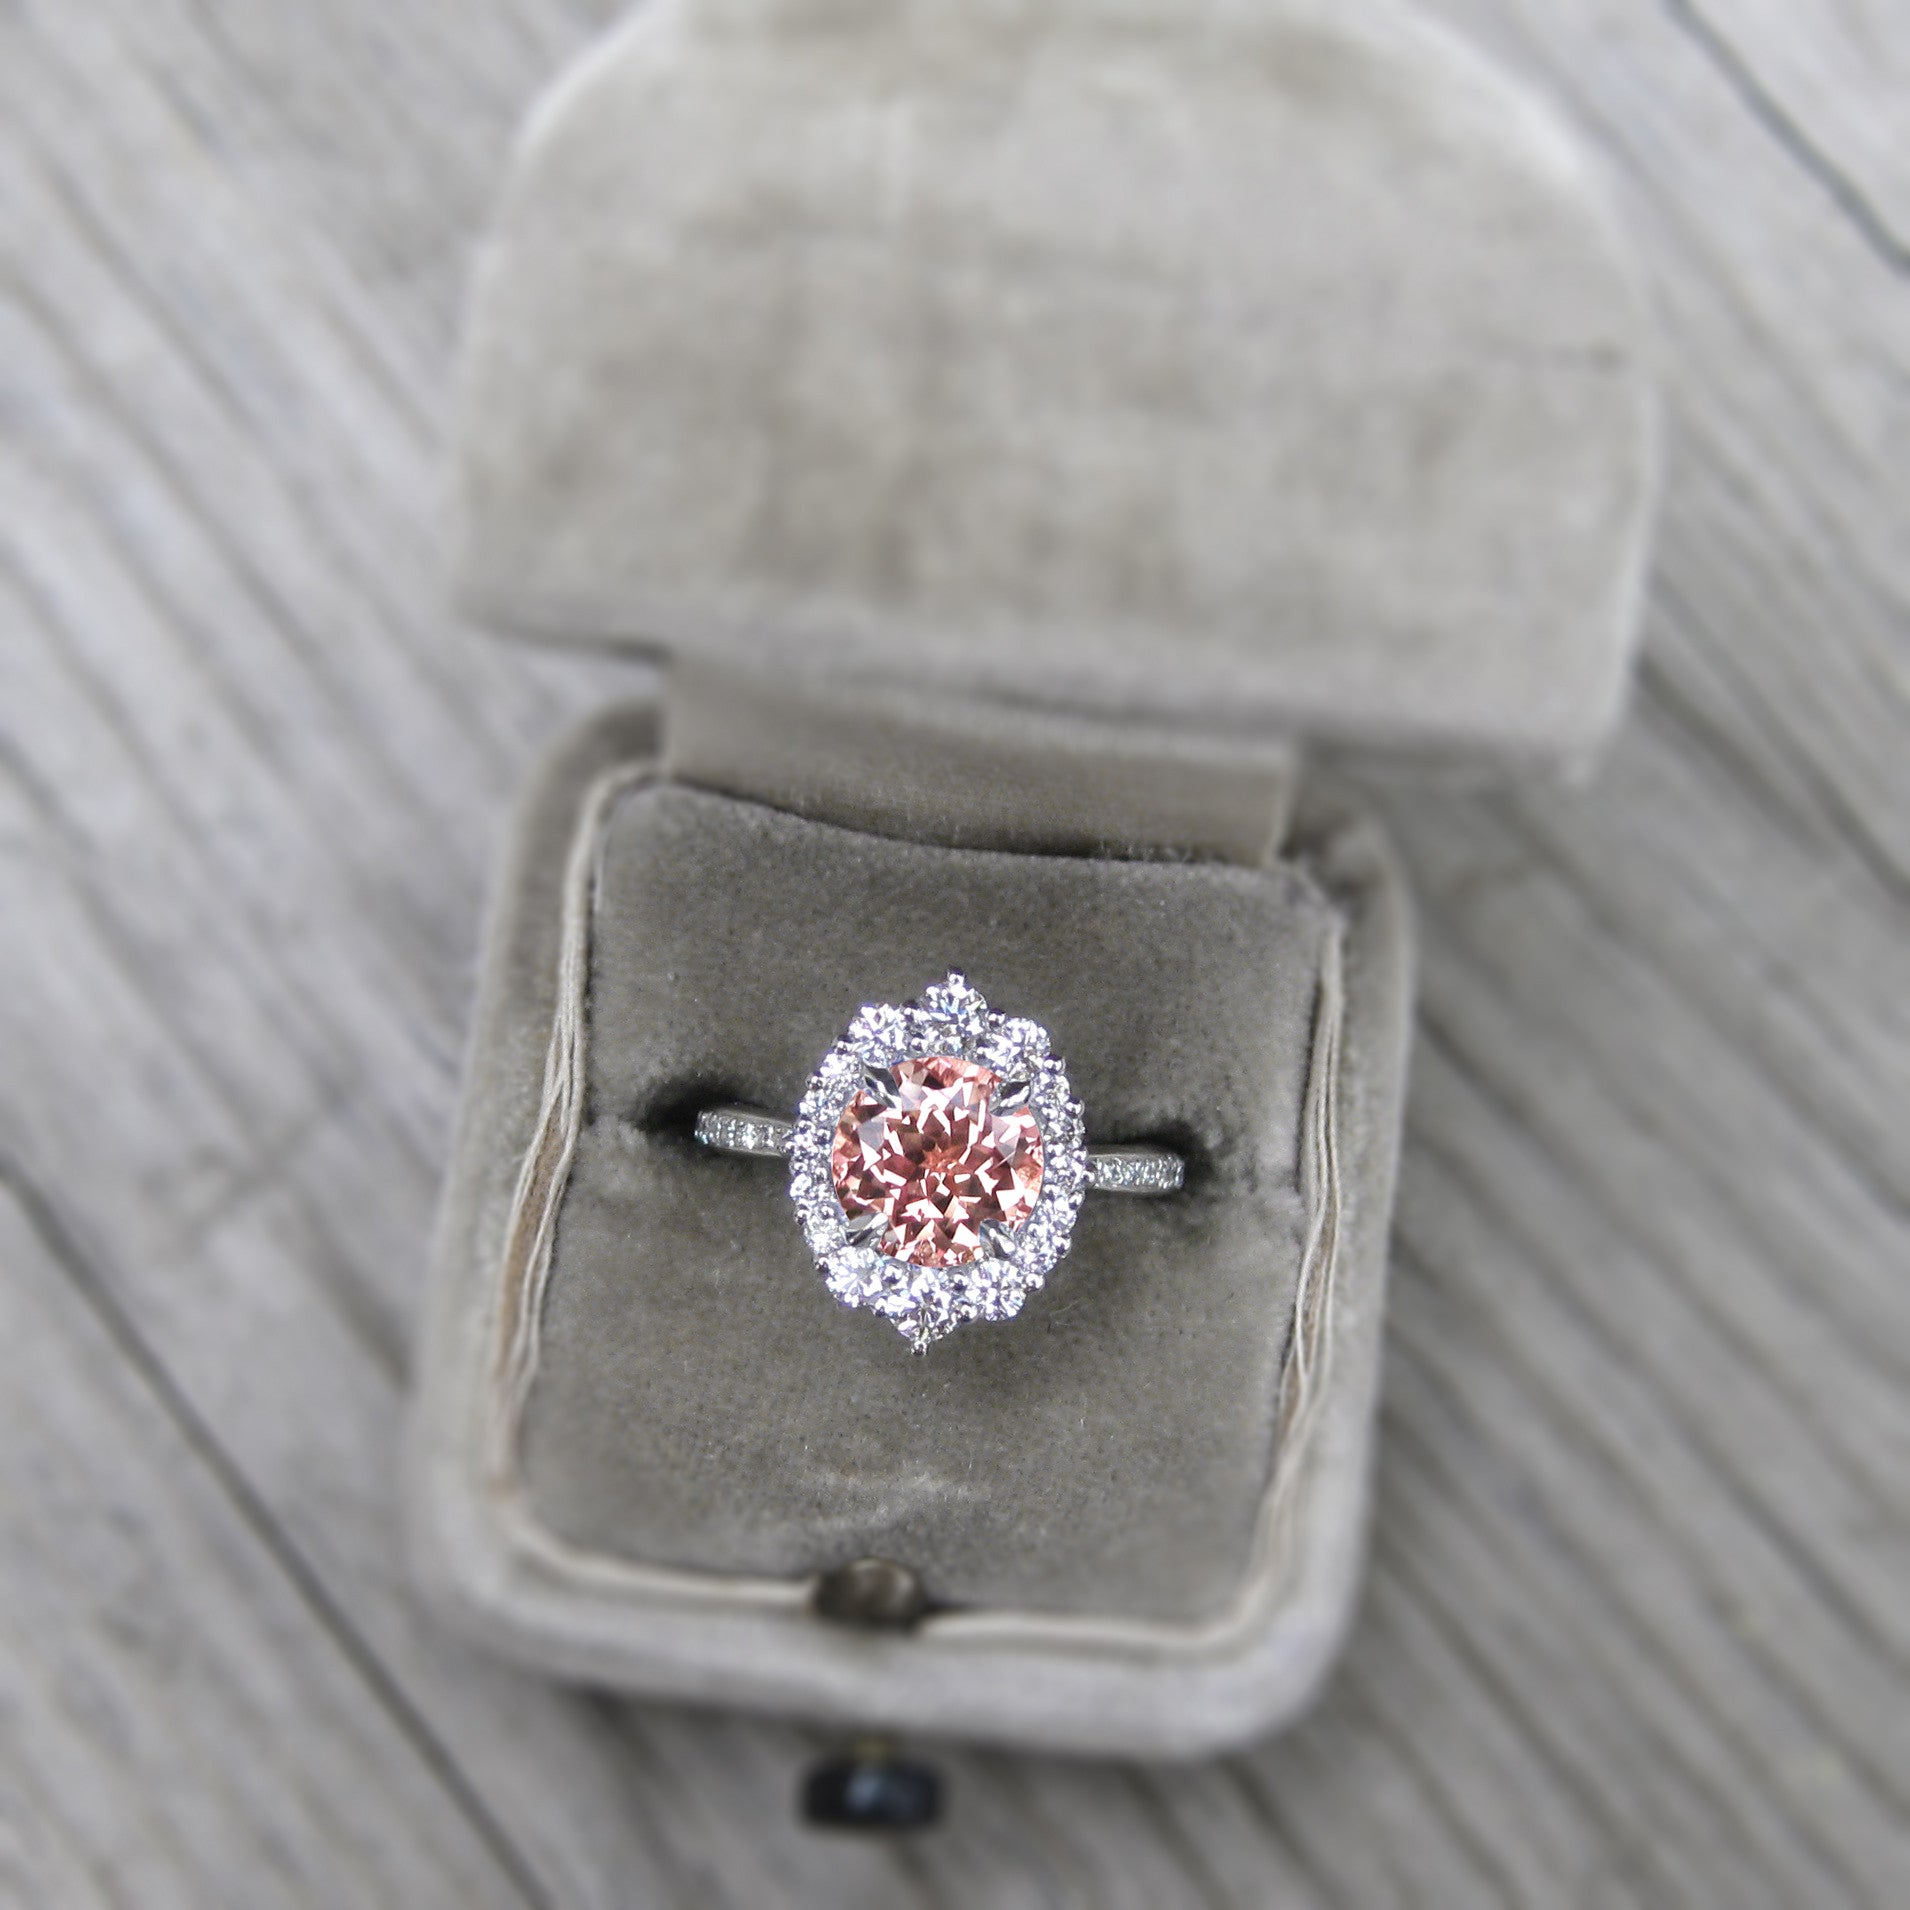 Champagne peach sapphire engagement ring with diamond halo pav save peach sapphire engagement ring with diamonds in 14k gold modeled in engagement ring box junglespirit Choice Image